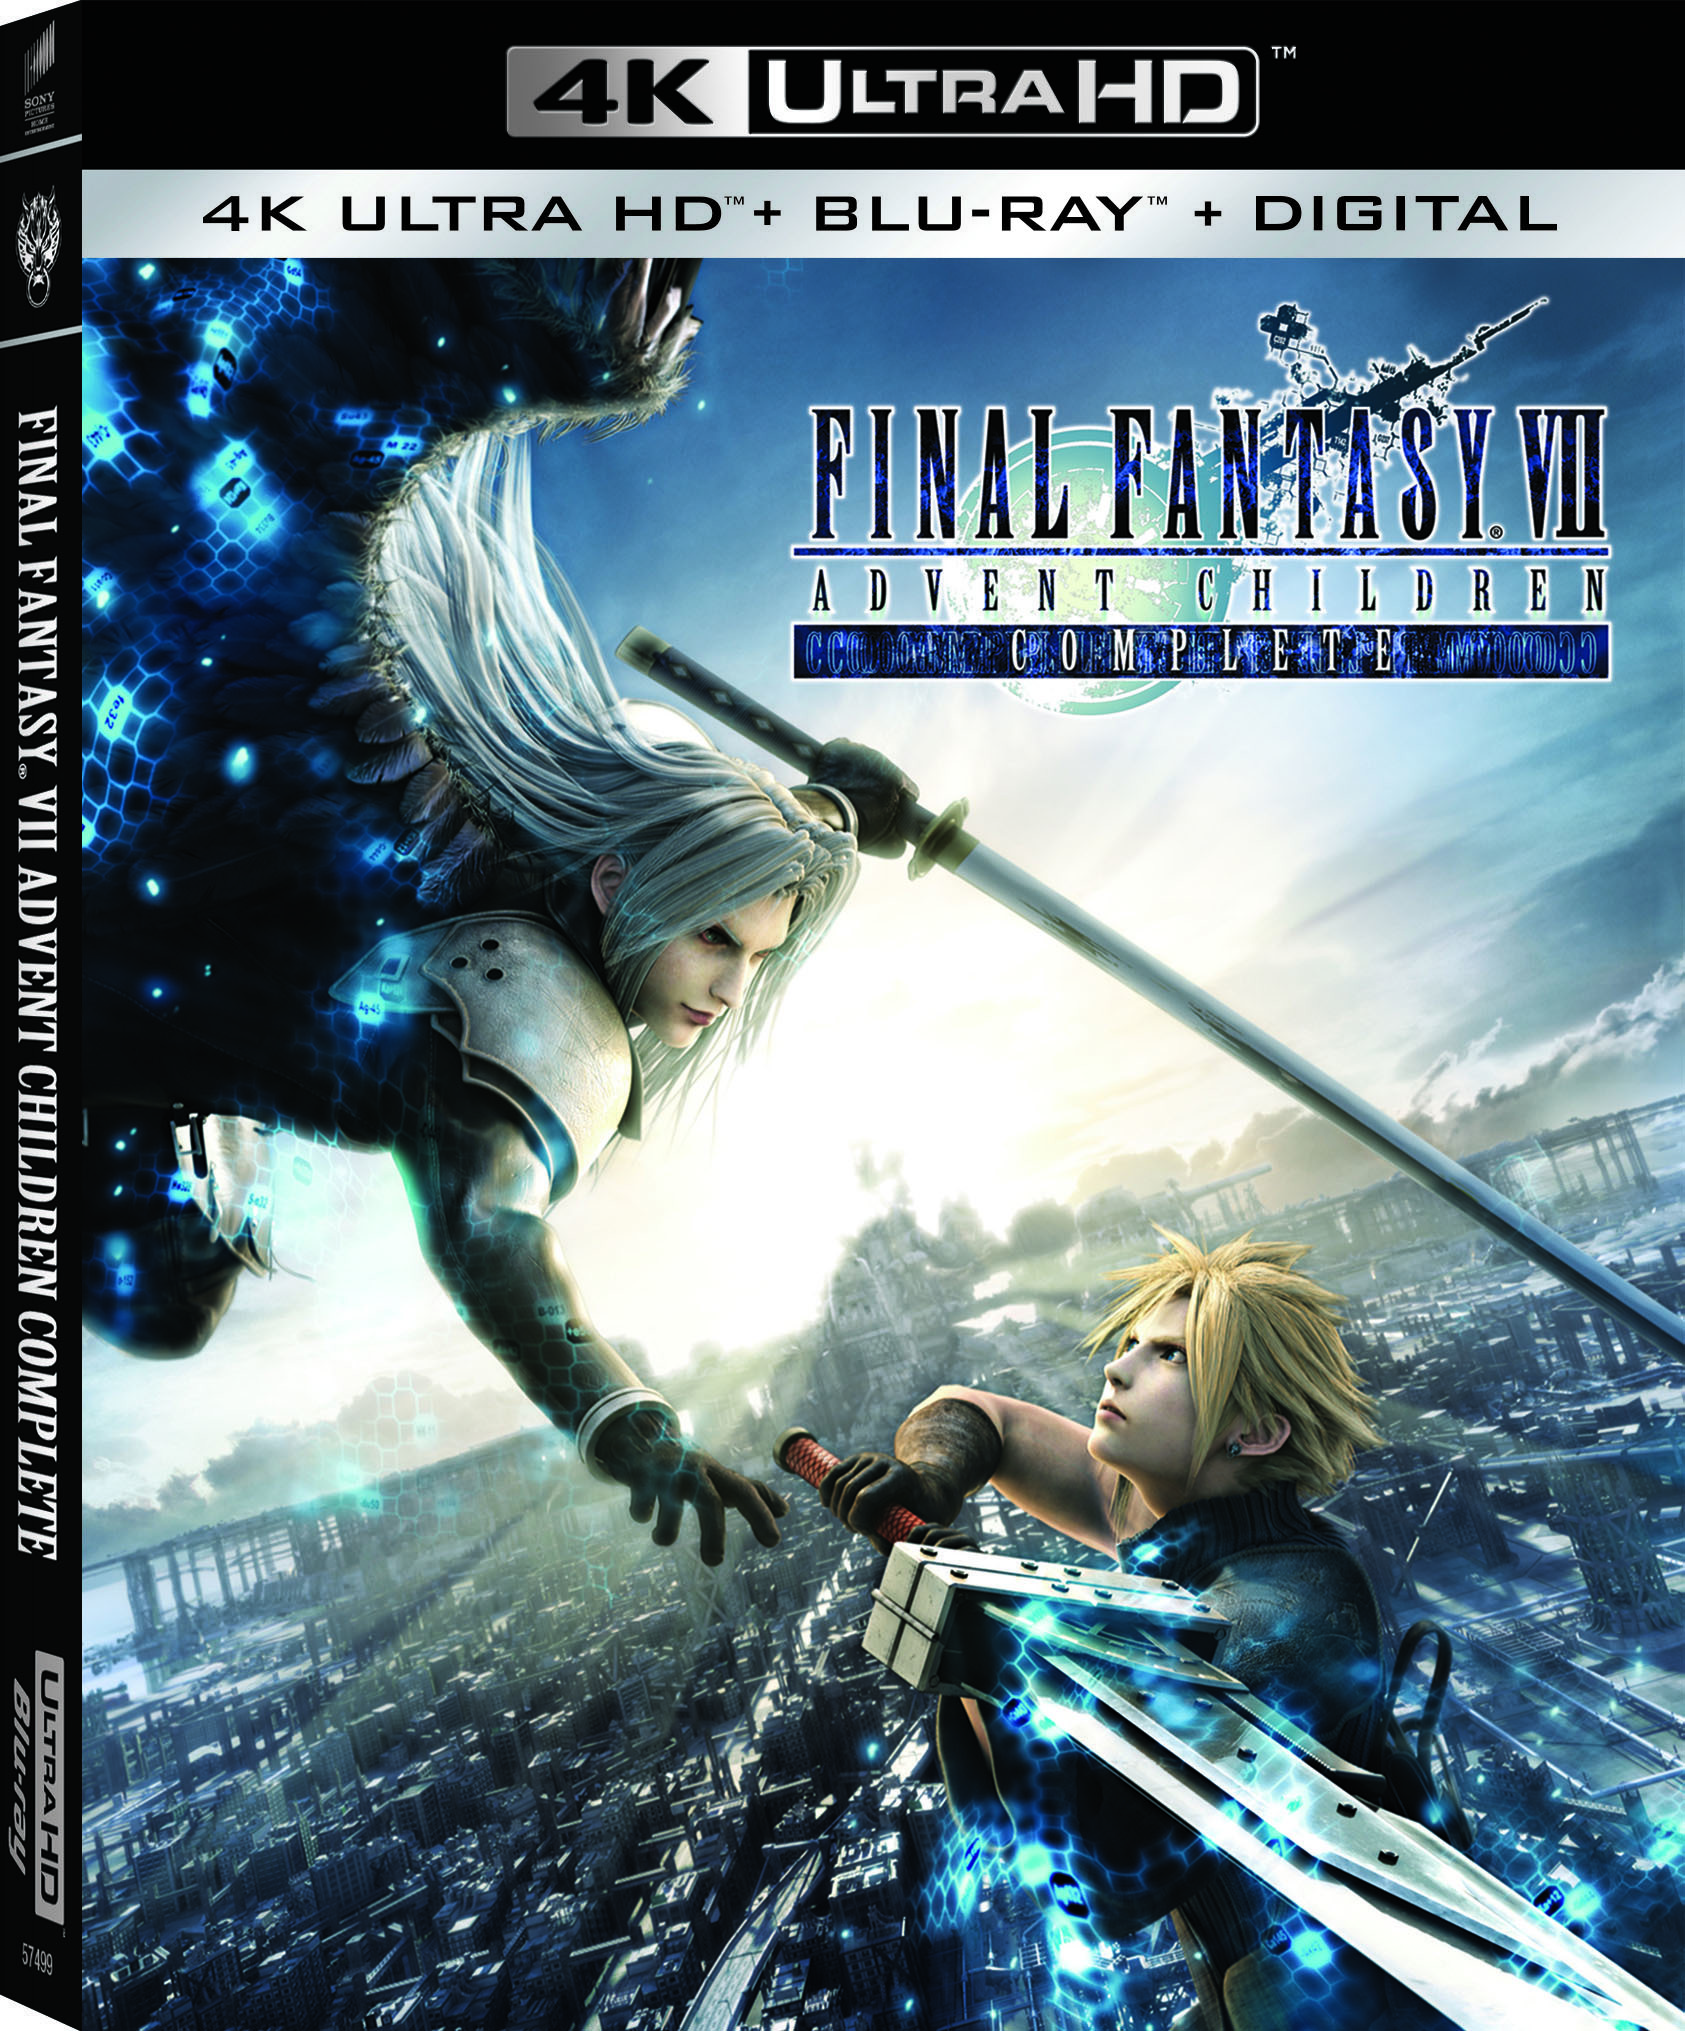 Final Fantasy VII: Advent Children Complete Remastered on 4K - Available June 8 (Sony Pictures) Slipcover Case